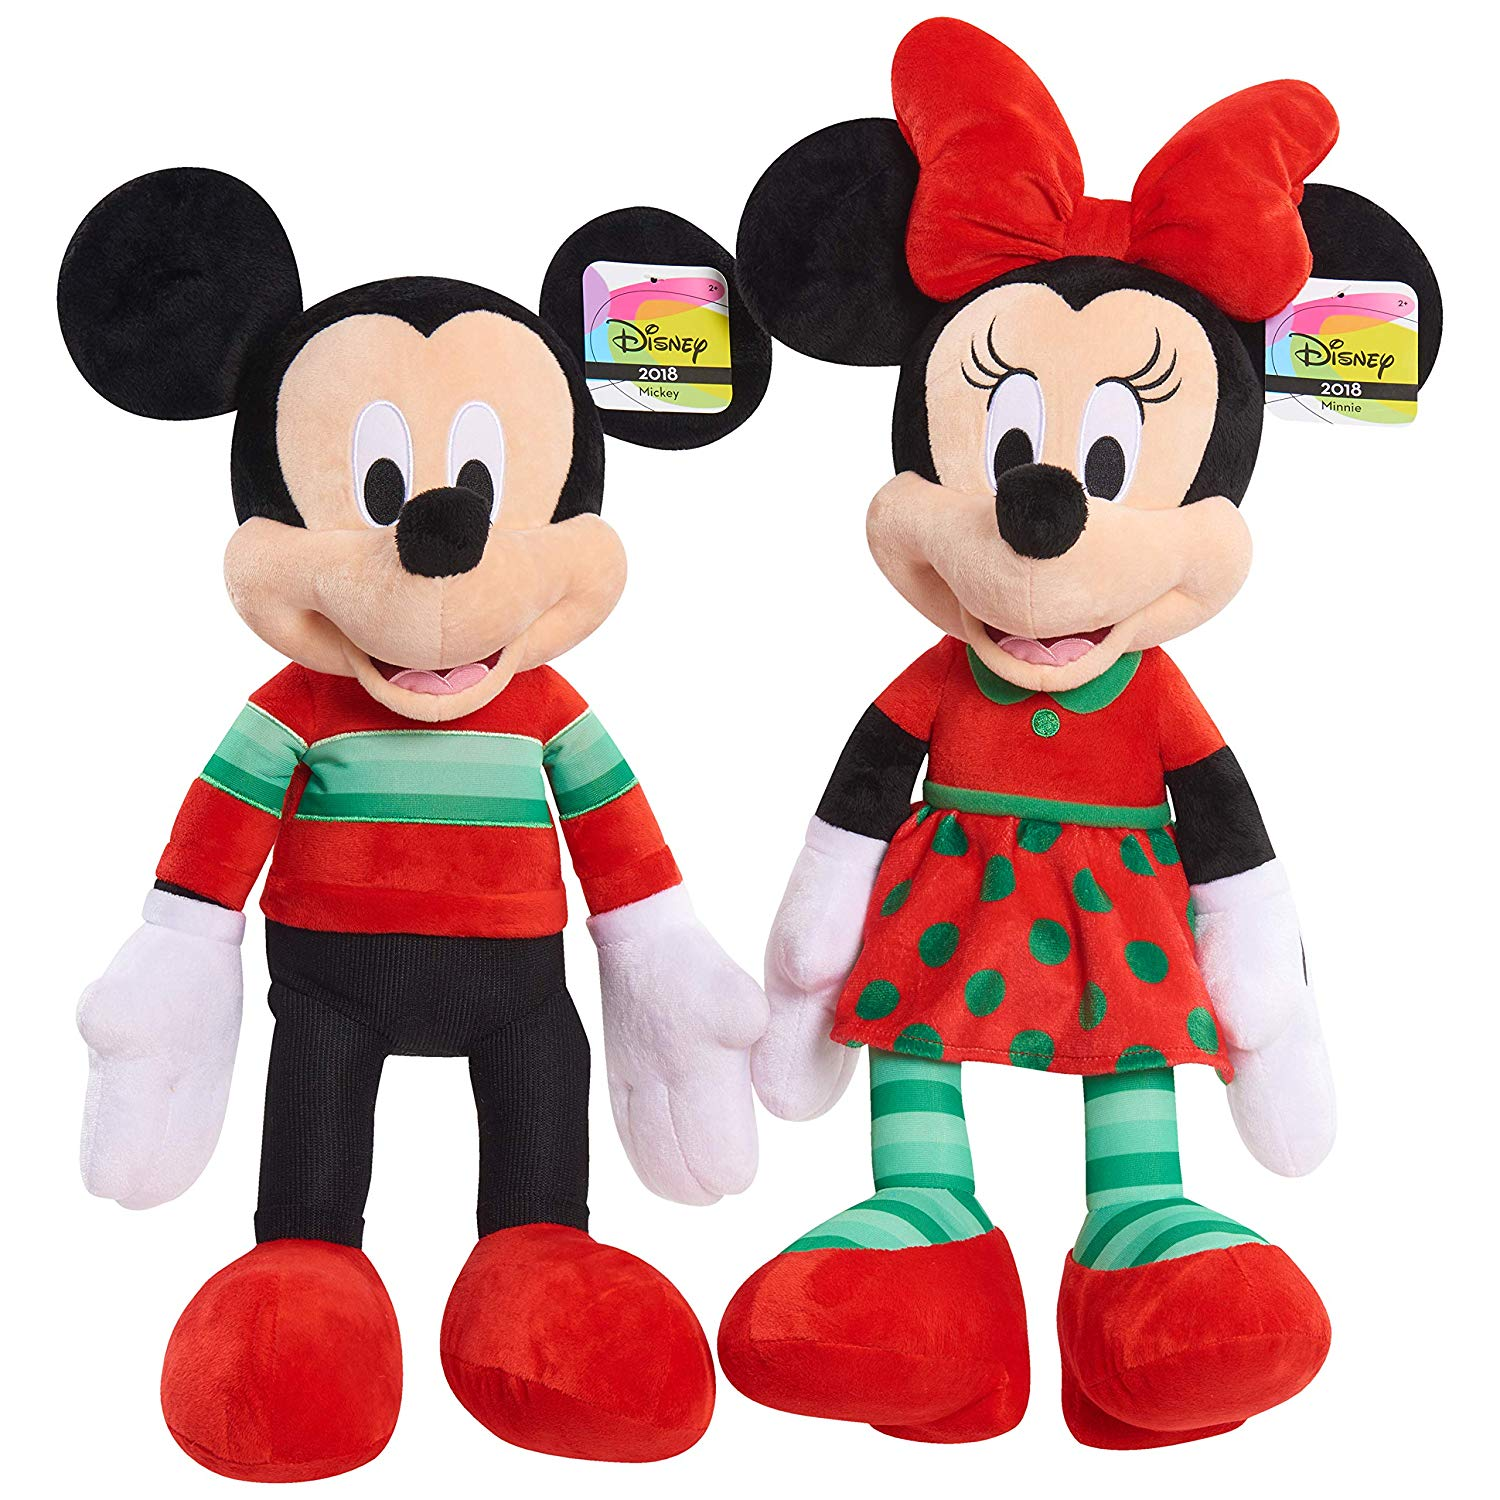 5 For A Disney Mickey Or Minnie Mouse Holiday 2018 Plush W